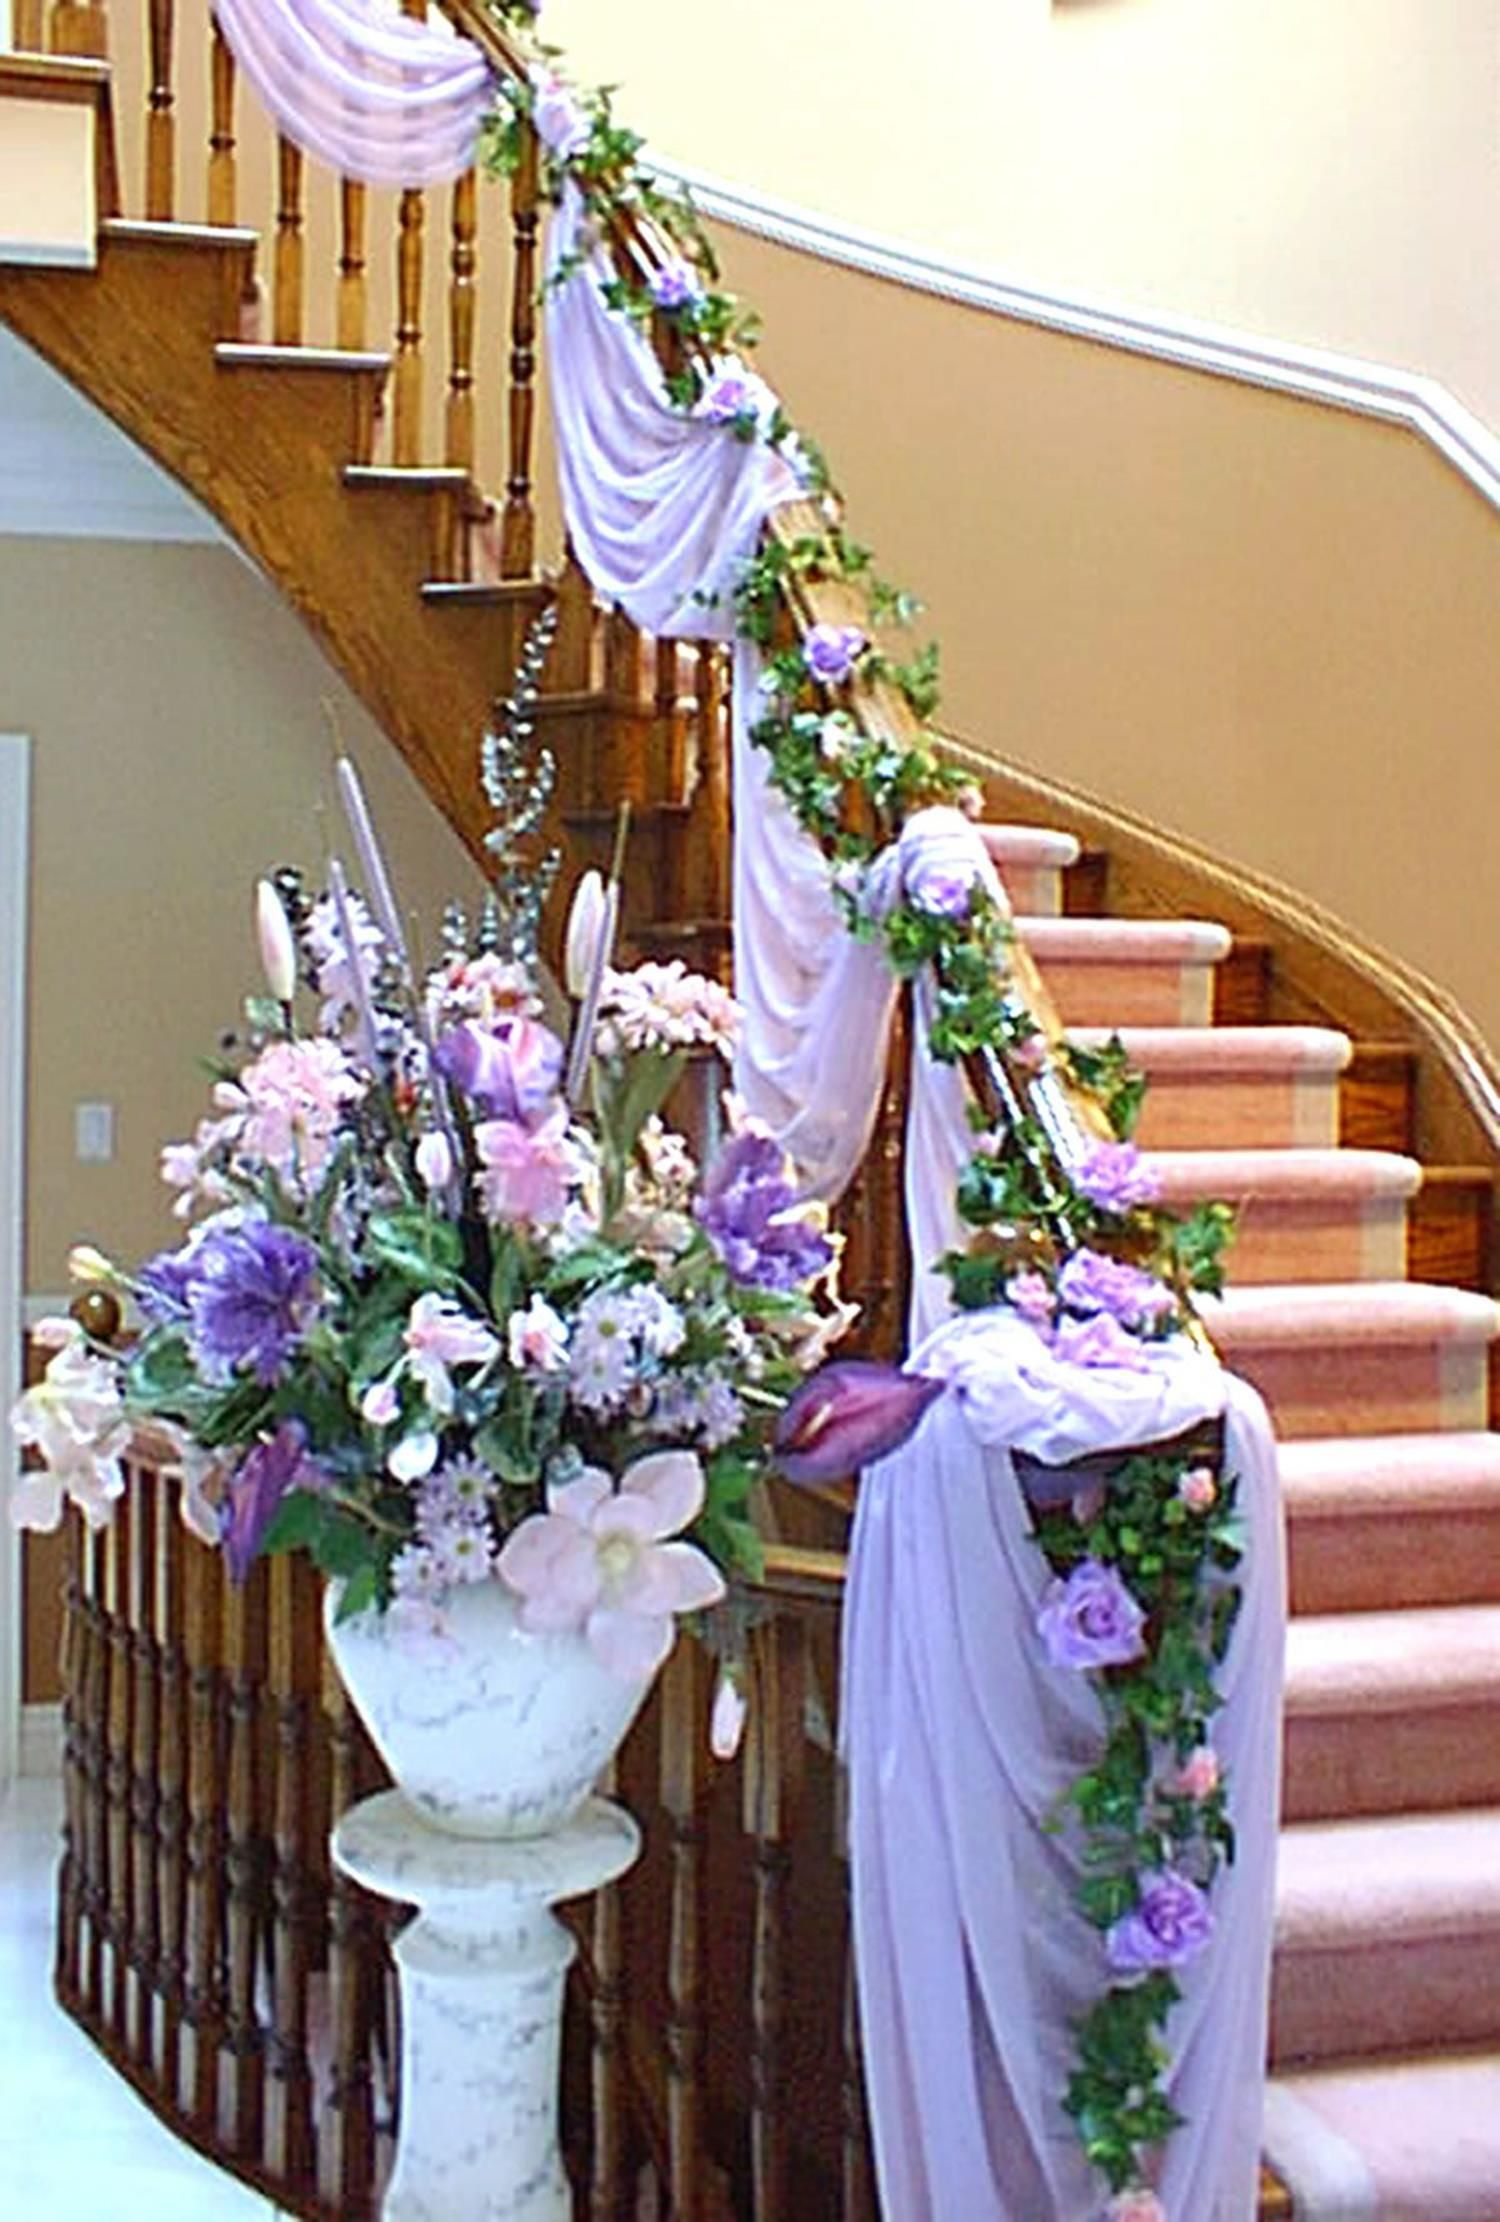 58 Inexpensive Decoration Ideas For Wedding At Home Fashion And Wedding Home Wedding Decorations Wedding Decorations Wedding Stairs